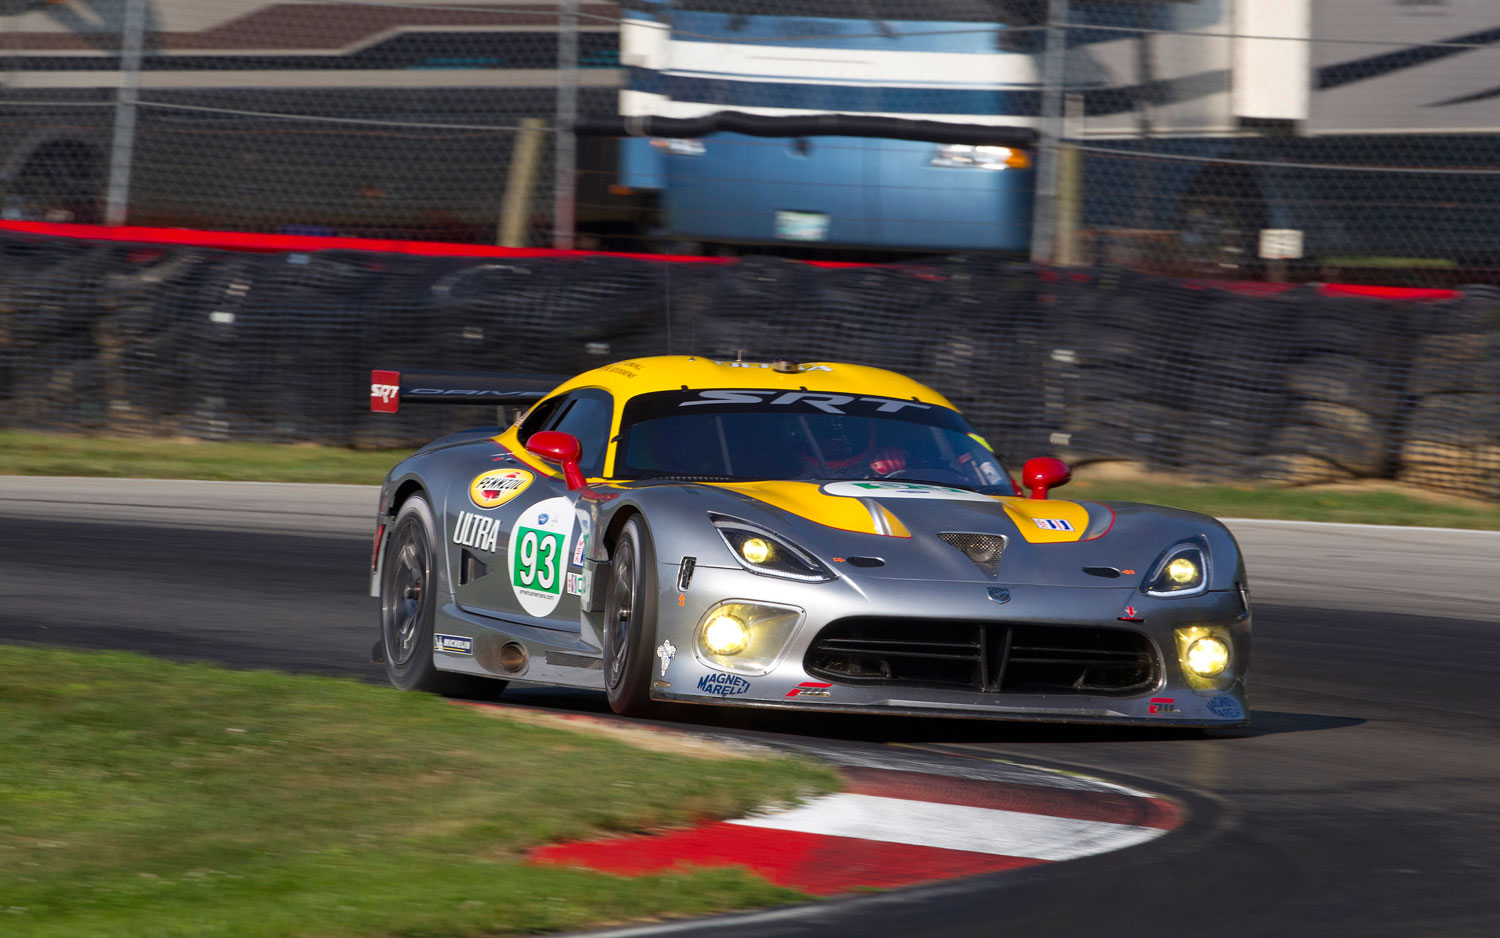 2013 SRT Viper Race Car Cornering1